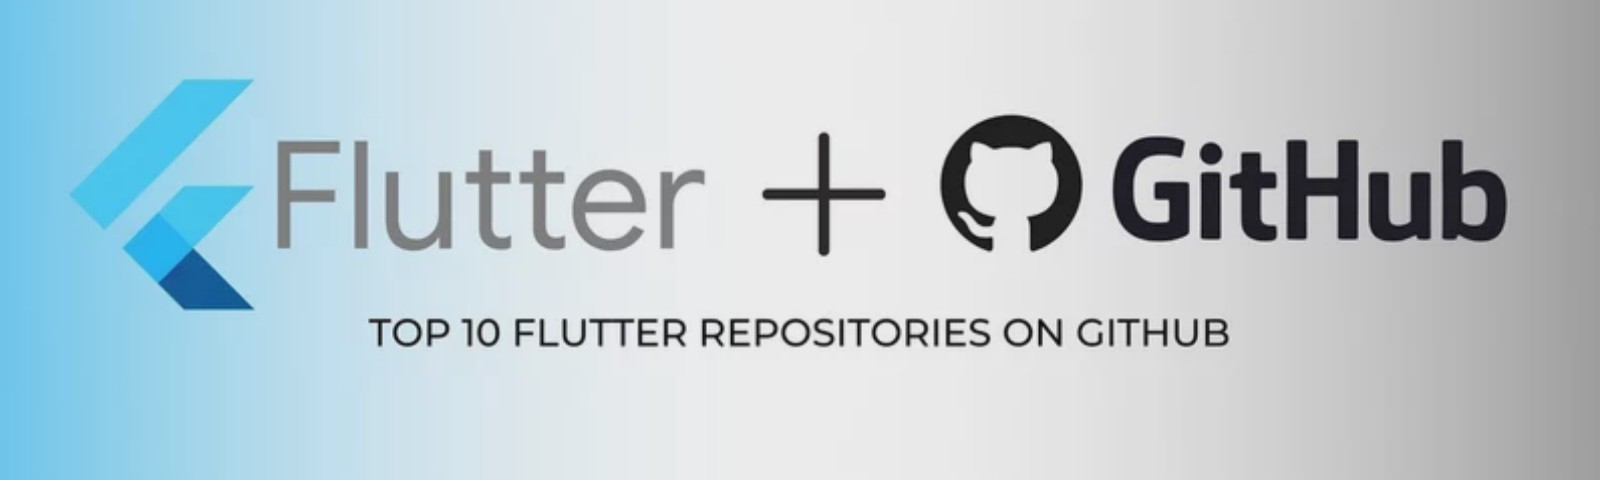 Top 10 Flutter Repositories on GitHub